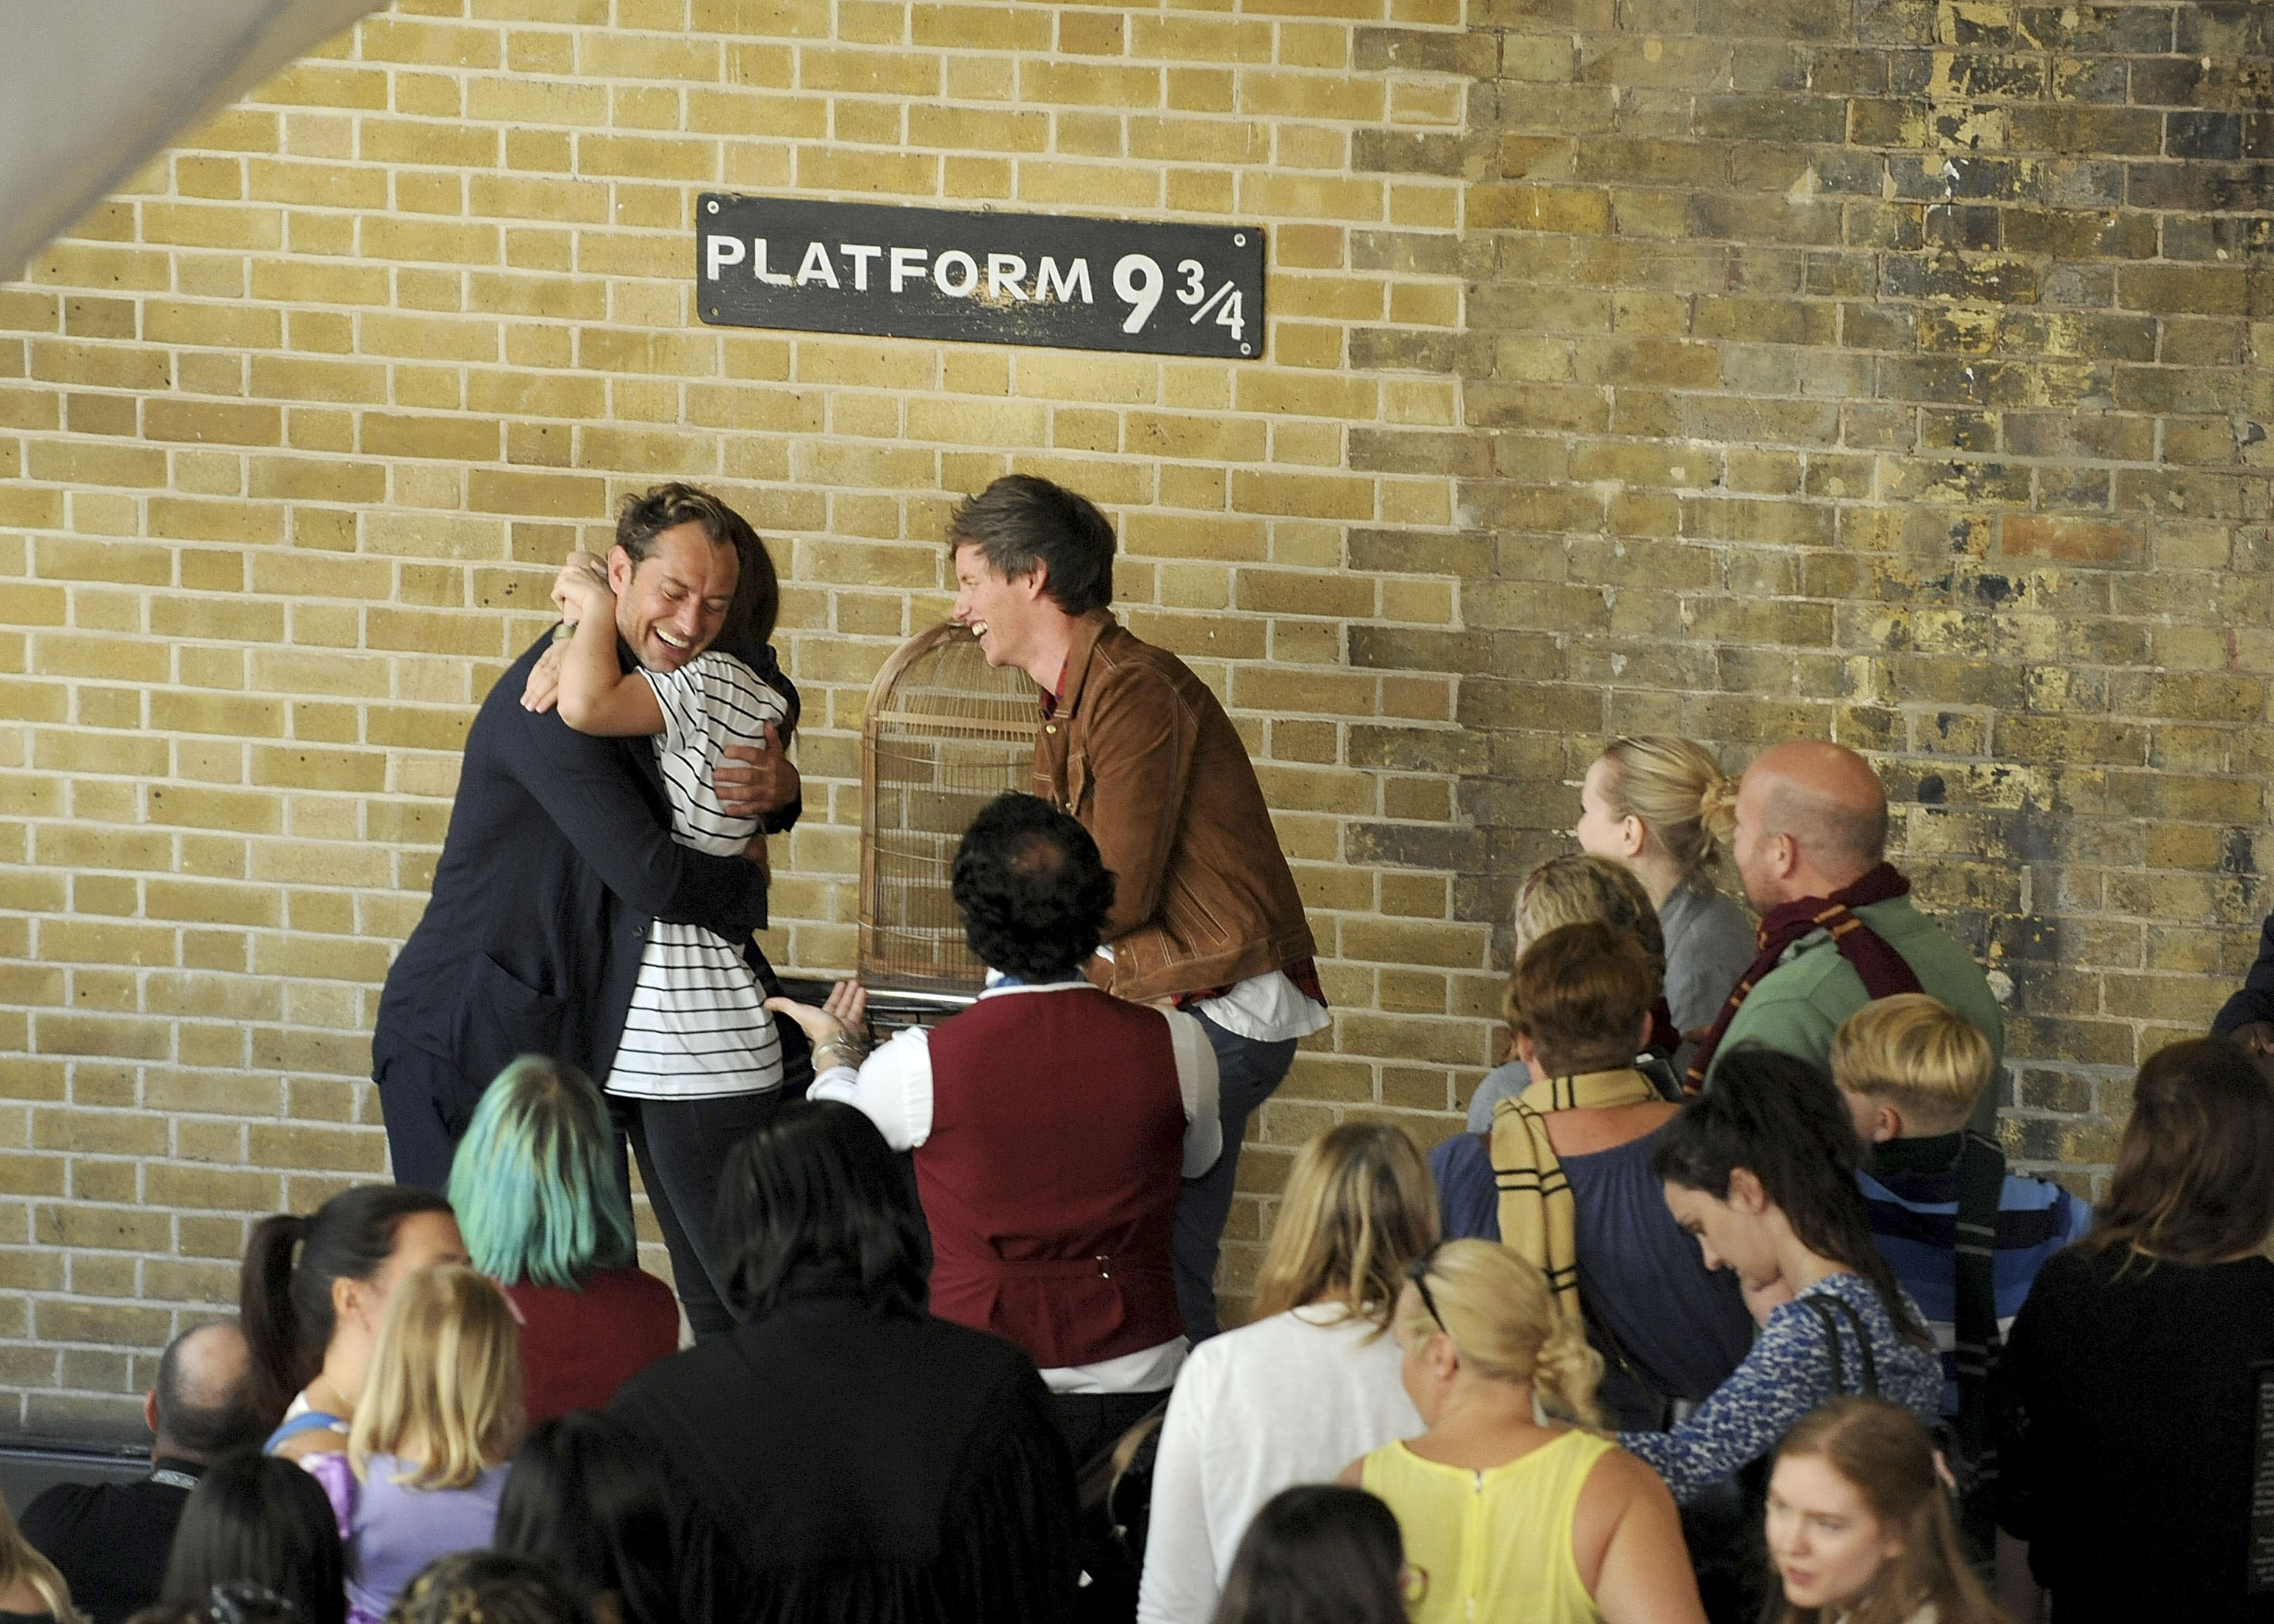 An a official photo of Redmayne and Law surprising fans at Platform 9 3/4 during the Back to Hogwarts Day celebration at King's Cross station on September 1